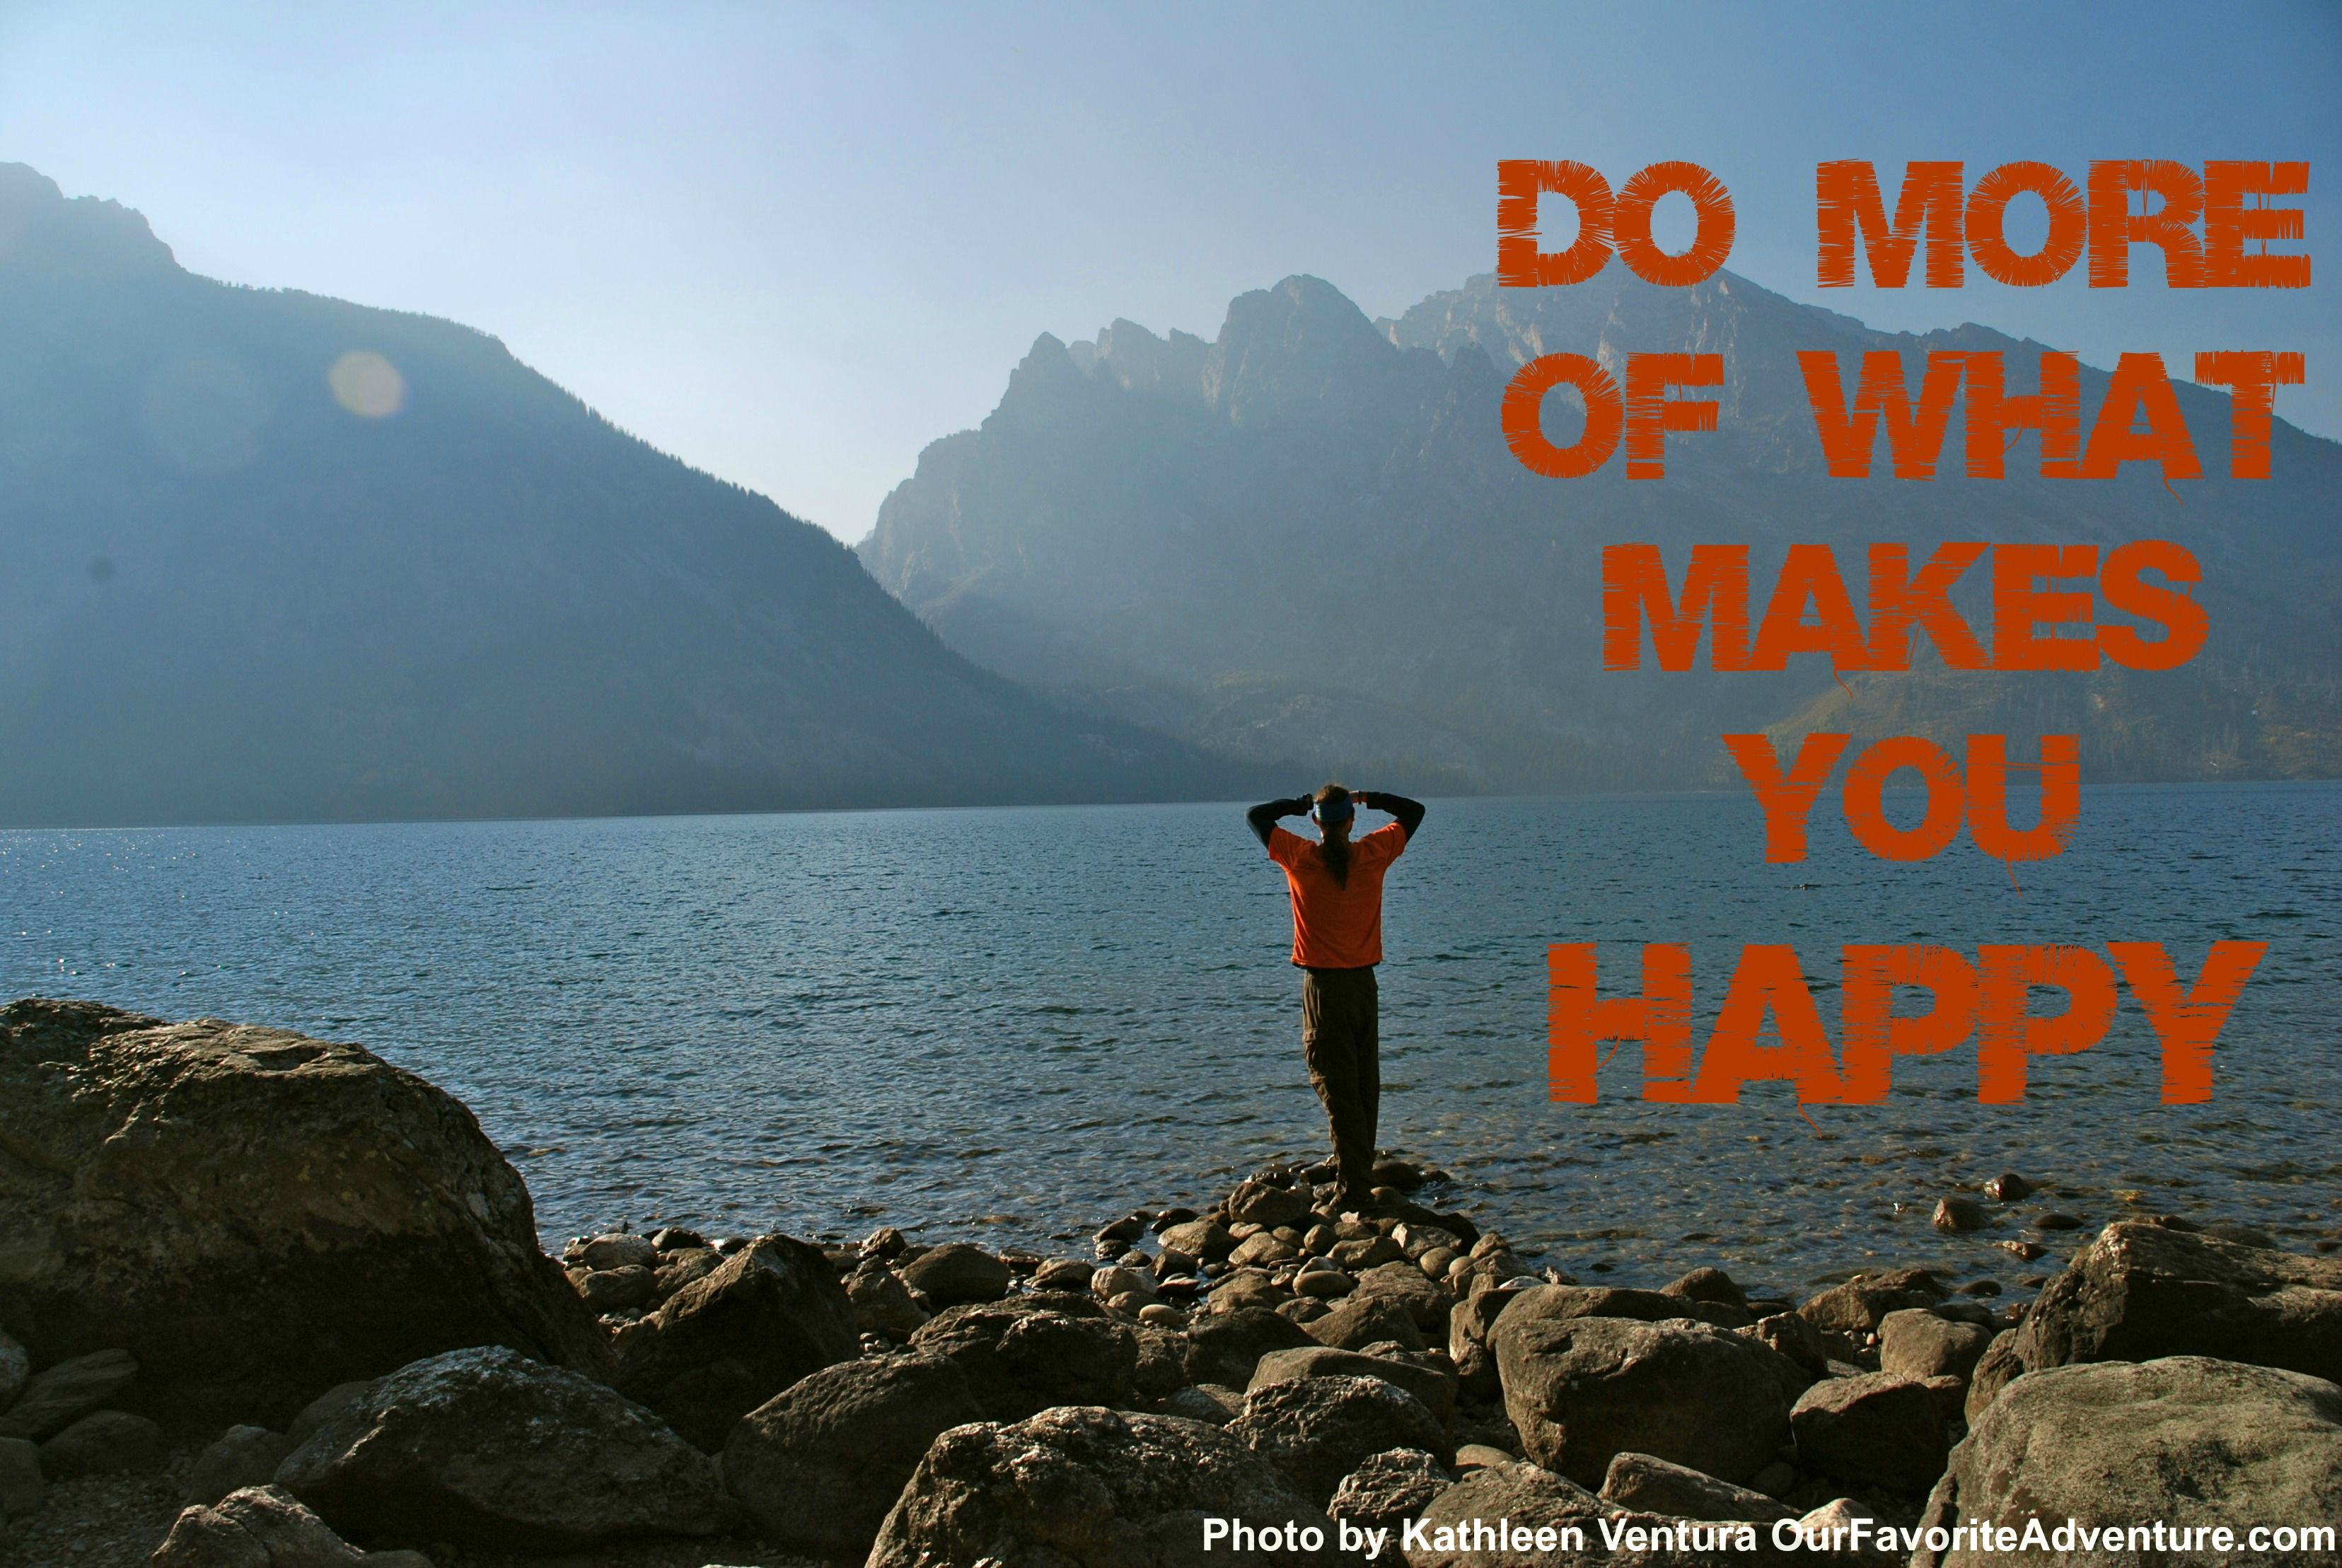 DO MORE OF WHAT MAKES YOU HAPPY happiness adventure